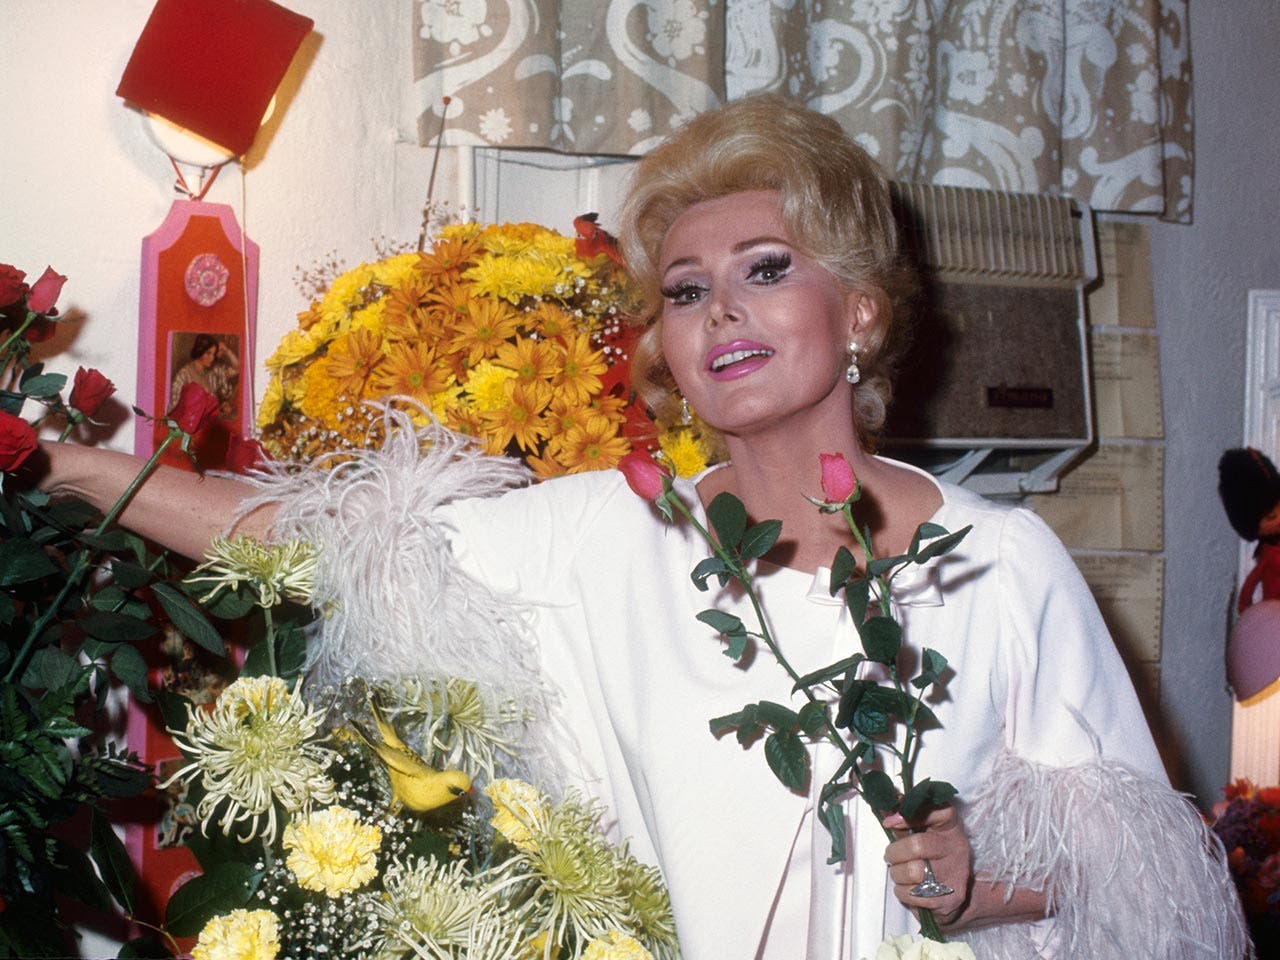 Zsa Zsa Gabor   Michael Ochs Archives/Getty Images